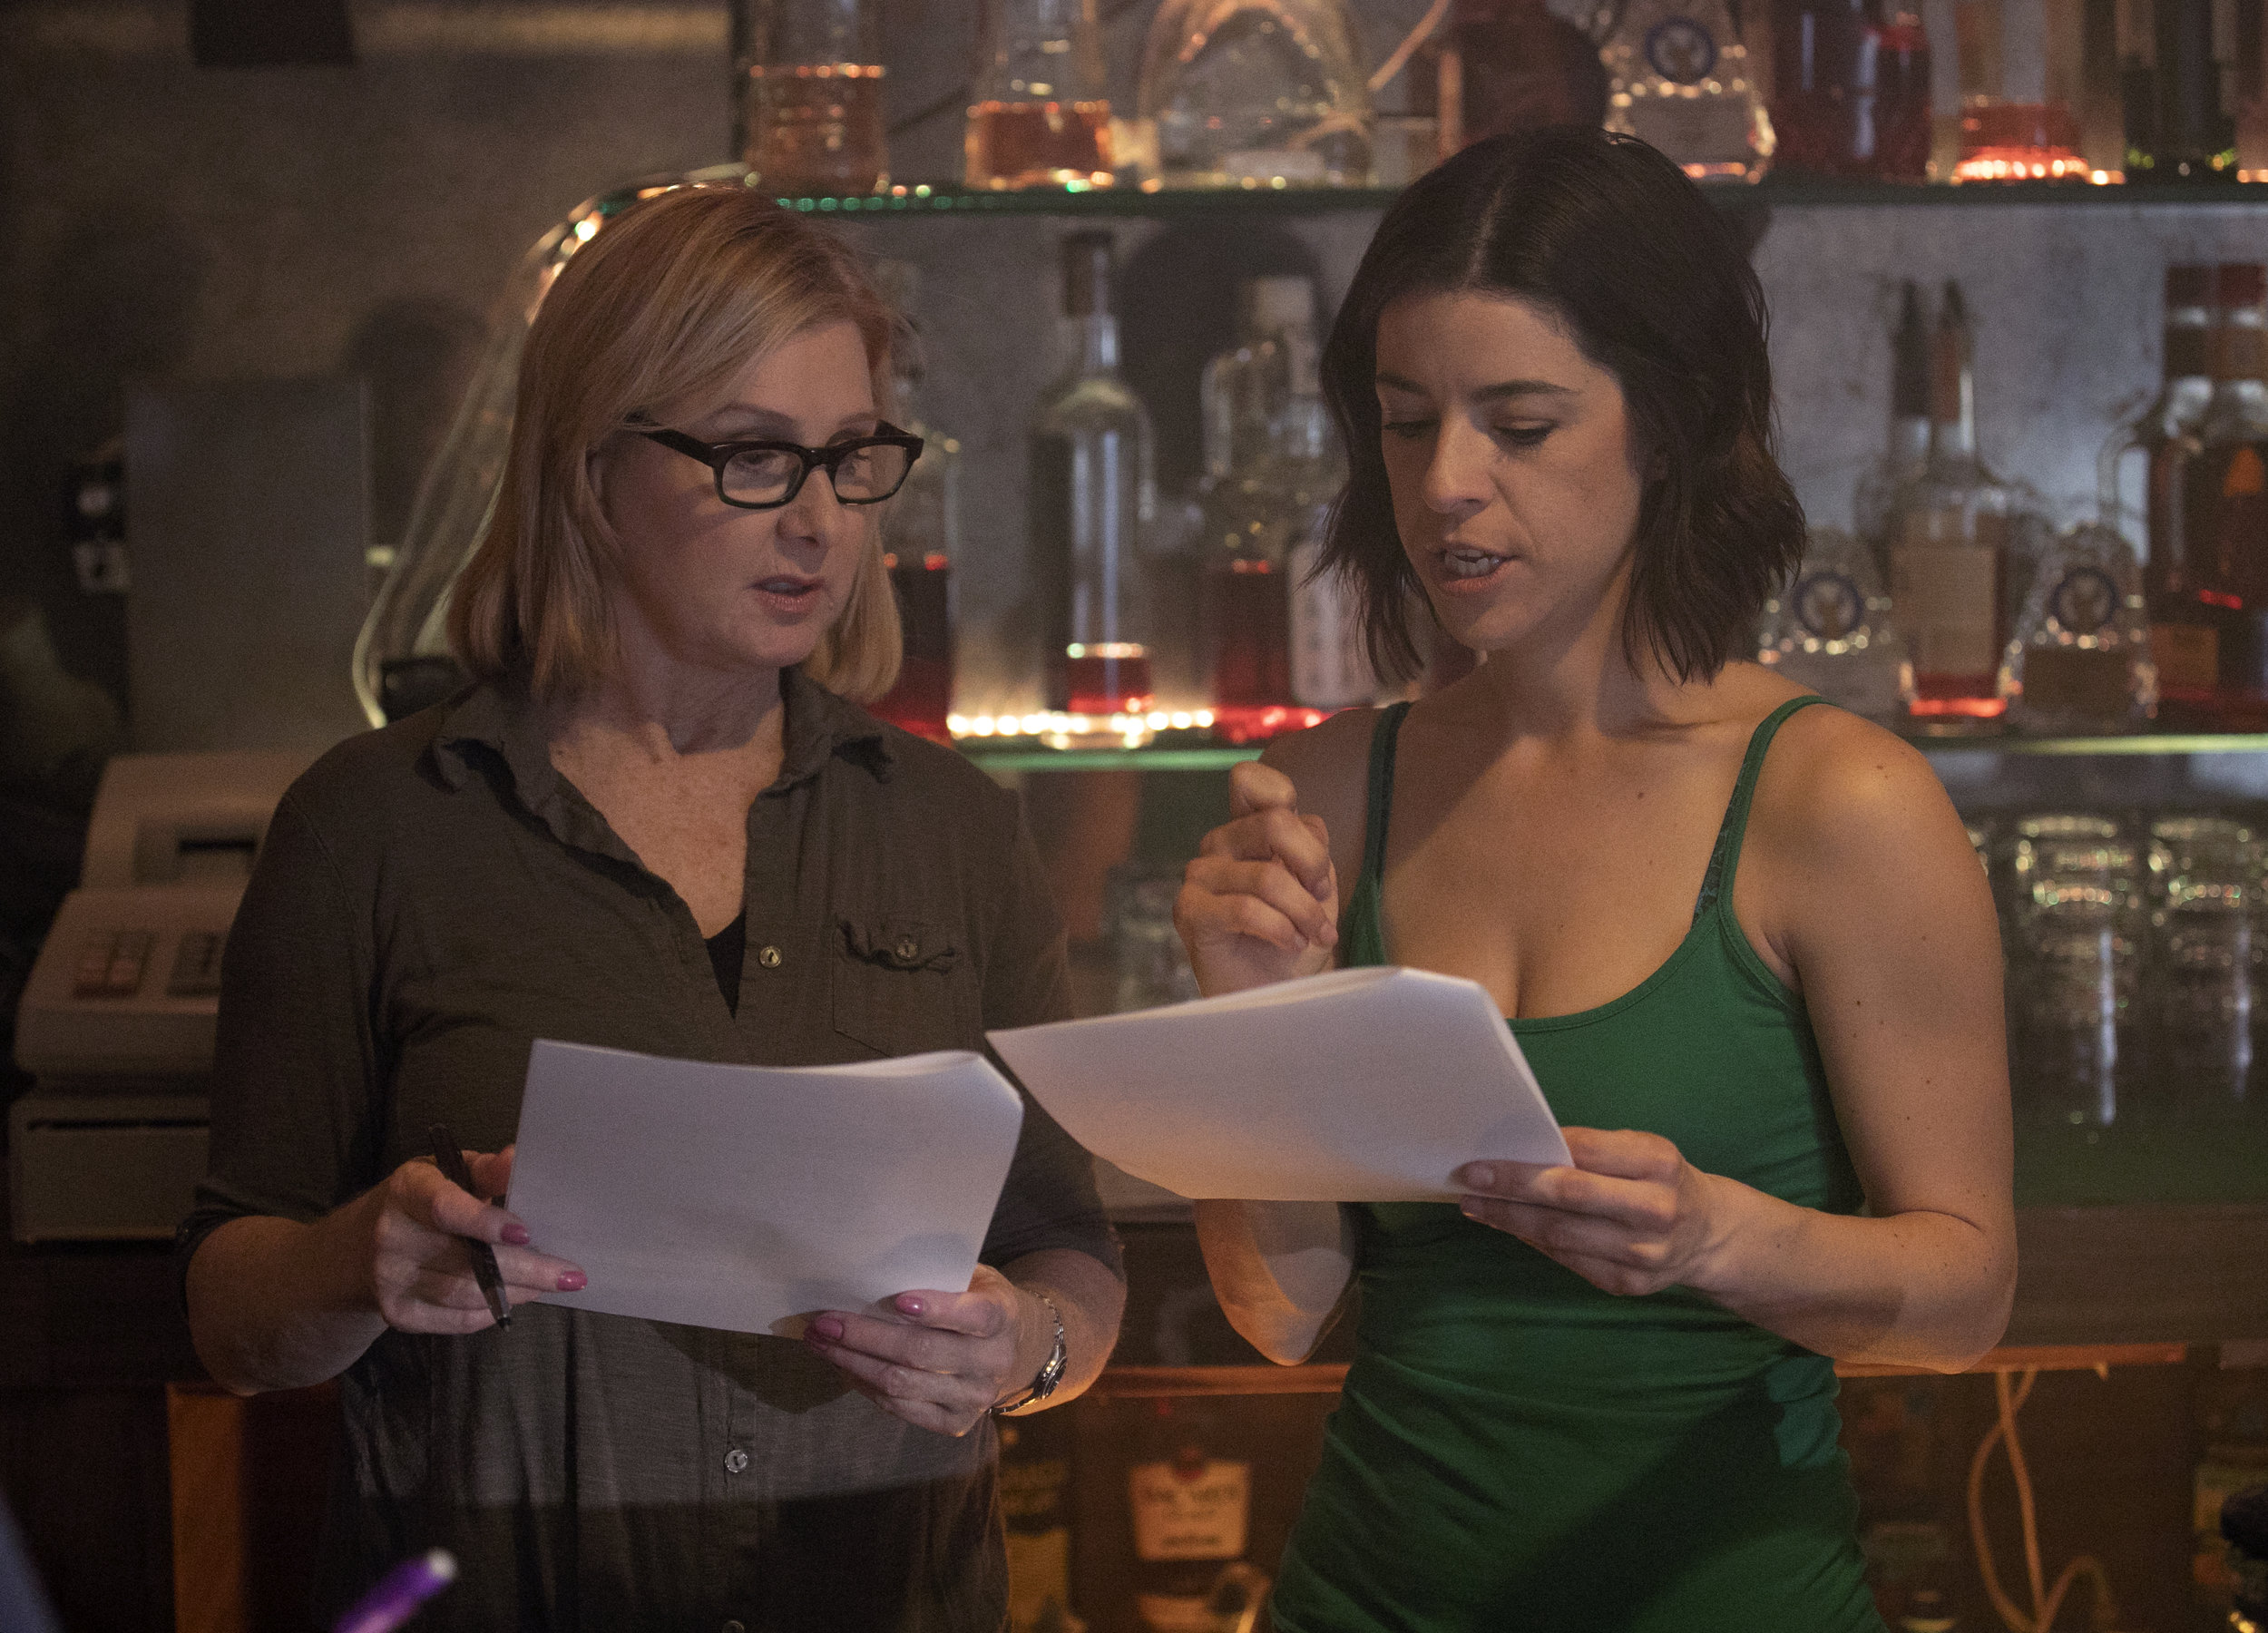 Mary Carrig (Annie) and Nina Brissey working the first scene of the movie.